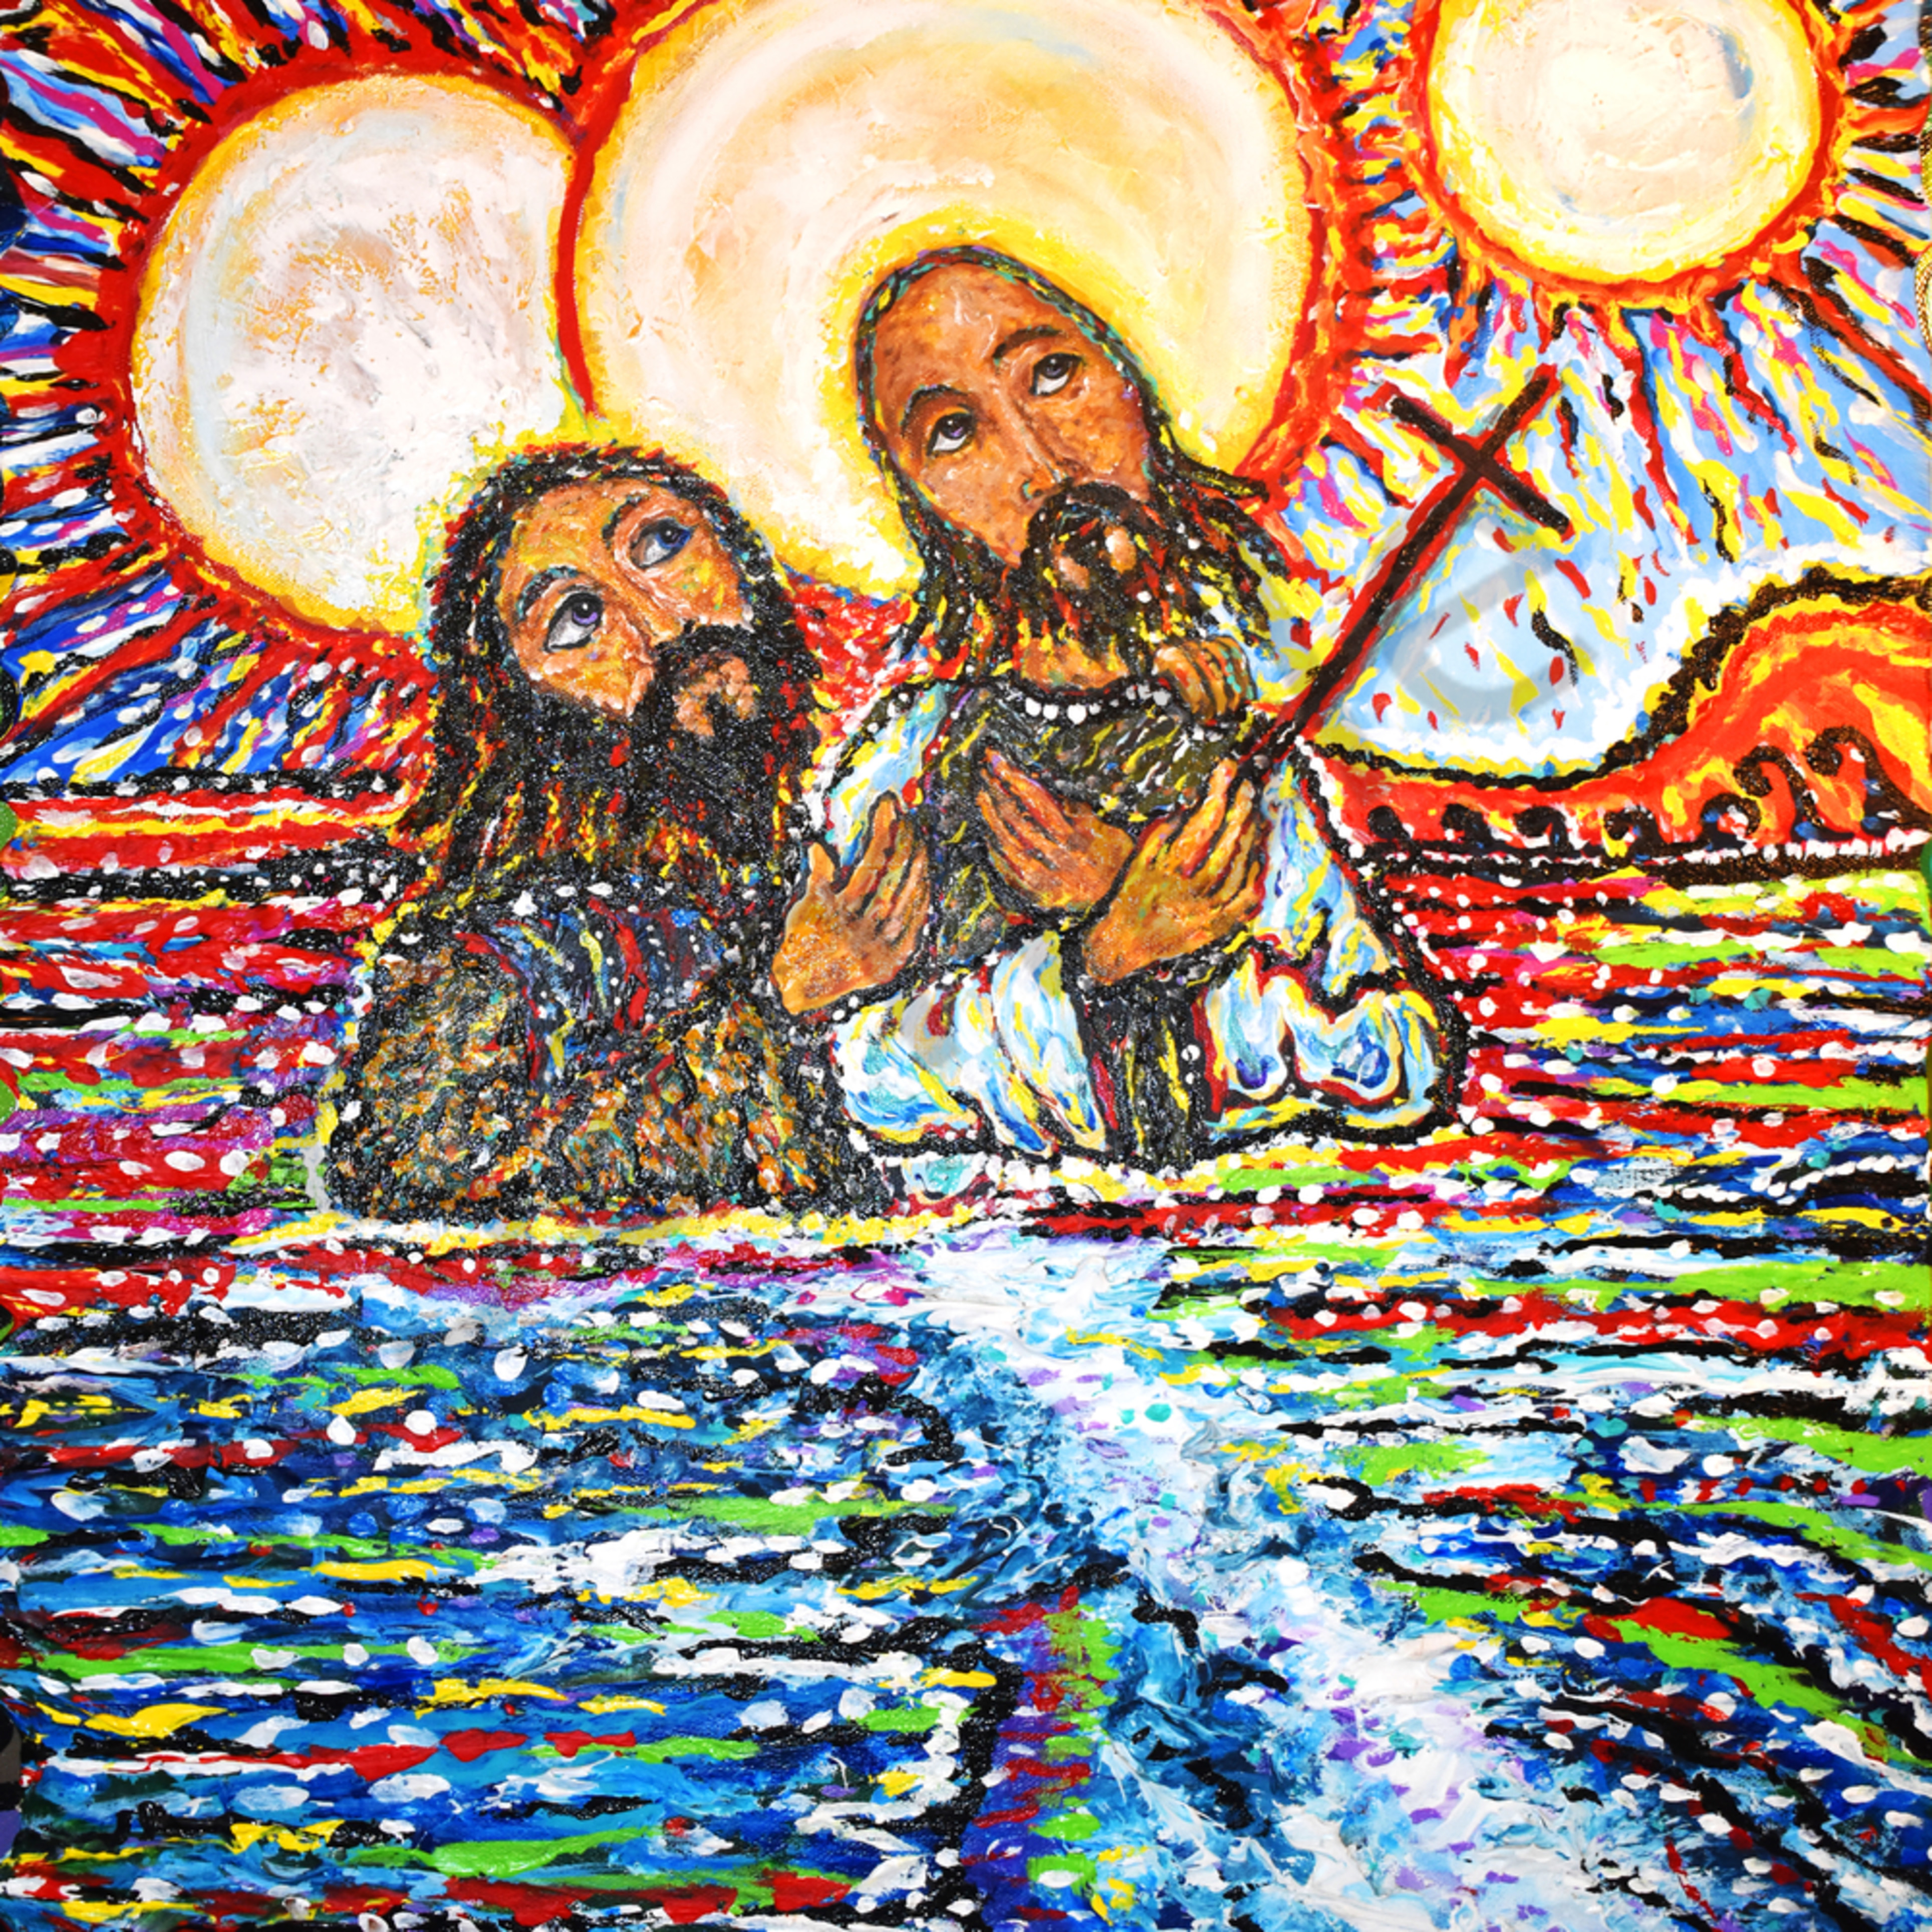 John baptising jesus in the jordan river revised by mark durham vhcvcd